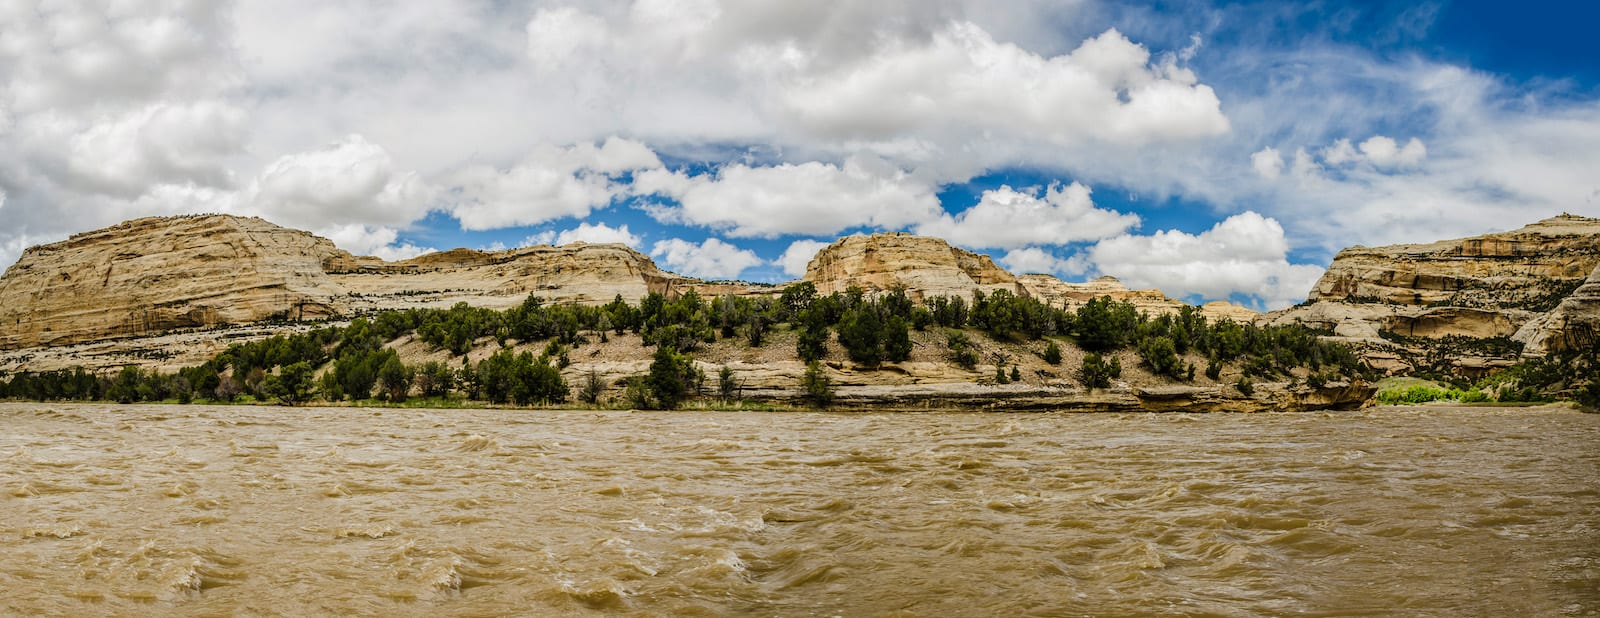 Yampa River Rafting Panorama Harding Hole Overlook in Dinosaur National Monument CO